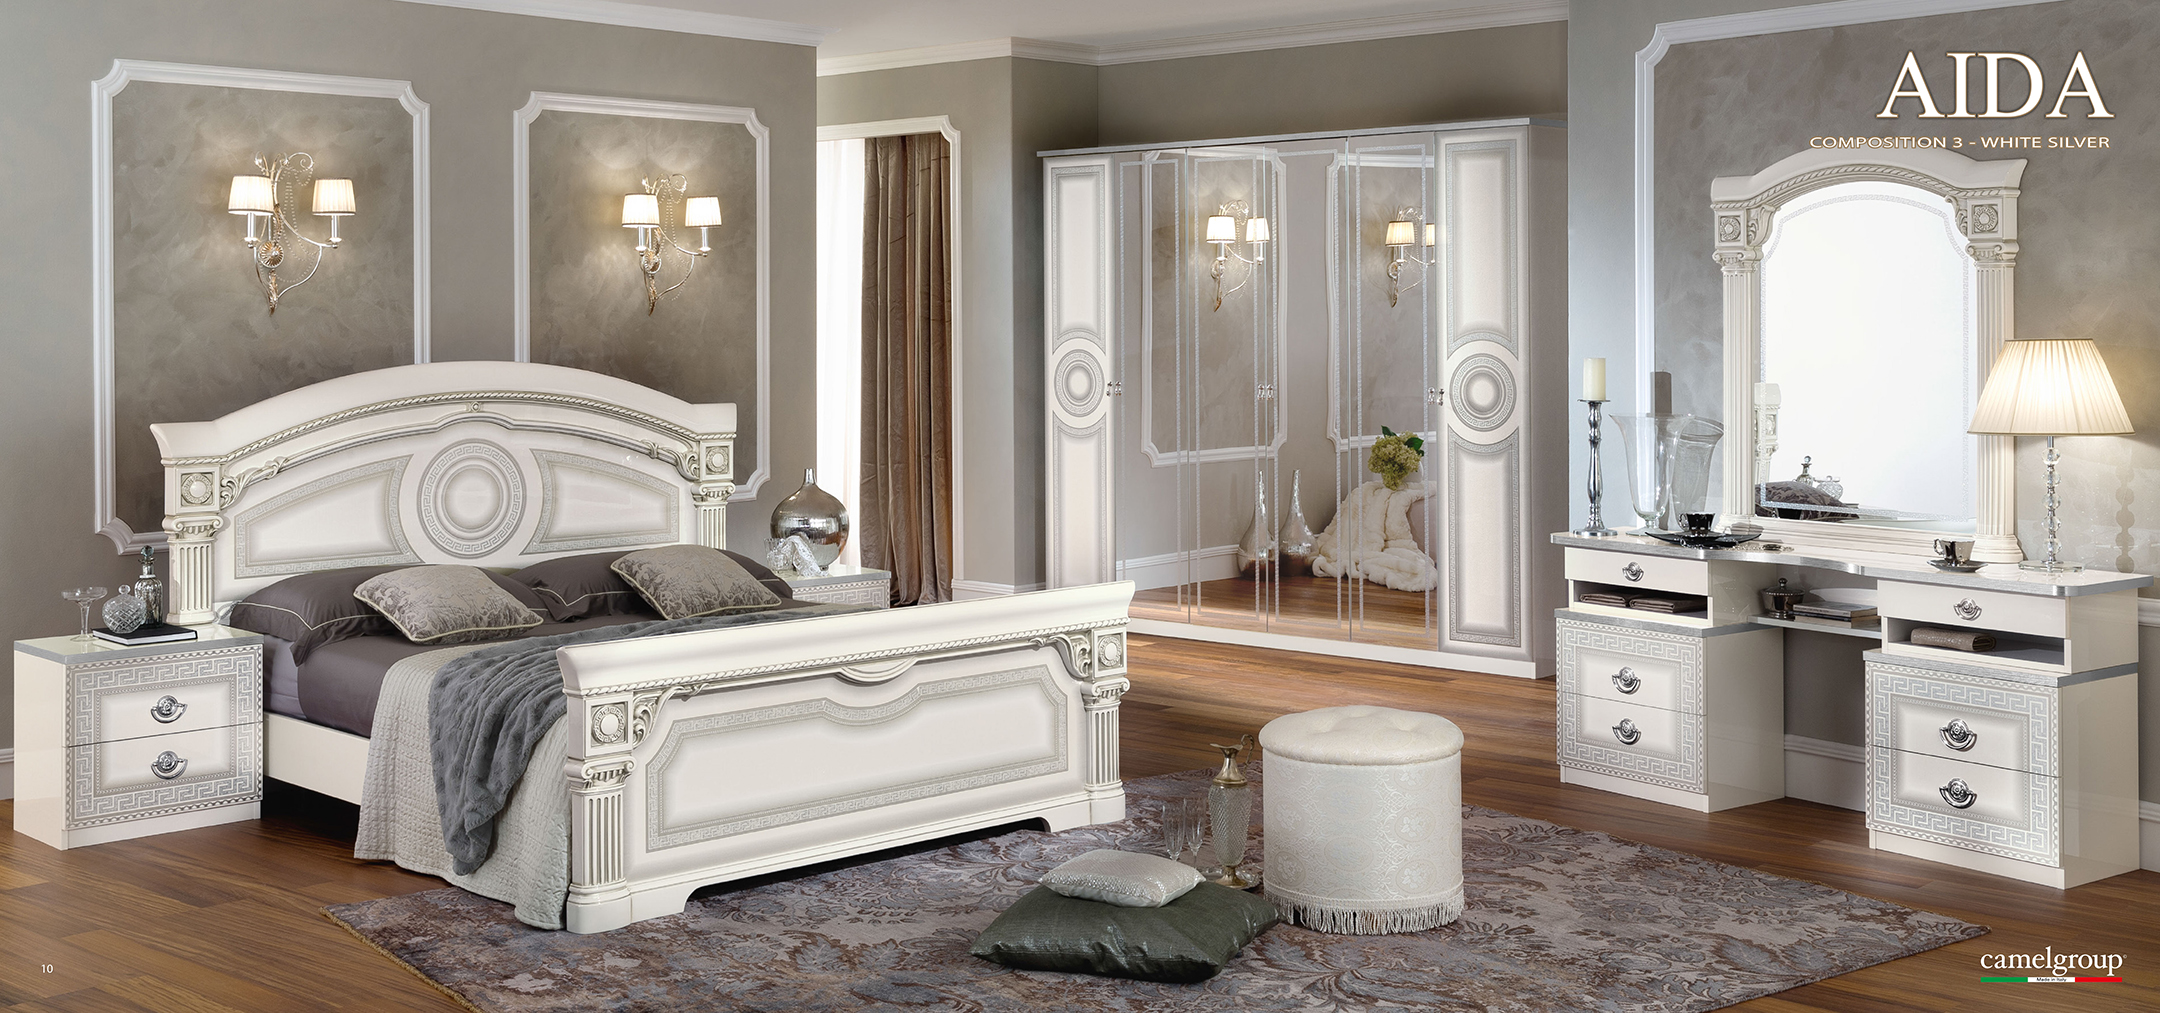 Aida White w/Silver, Camelgroup Italy, Classic Bedrooms, Bedroom ...